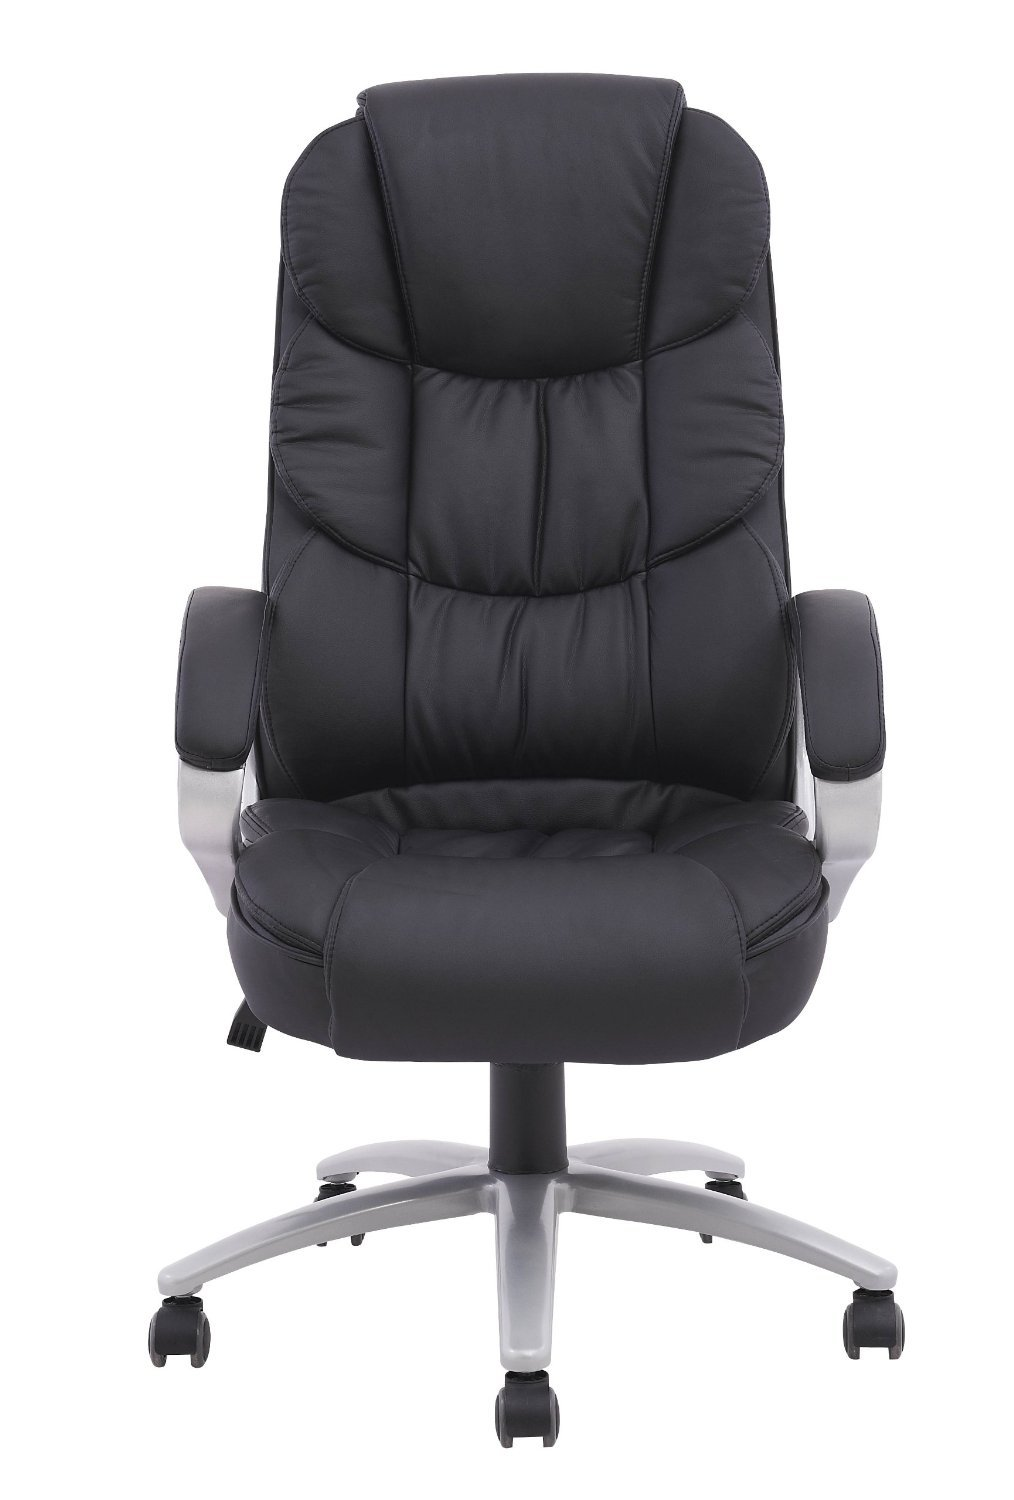 High Back Executive PU Leather Ergonomic Office Desk Computer Chair O10|High Back Executive Ergonomic Office Chair